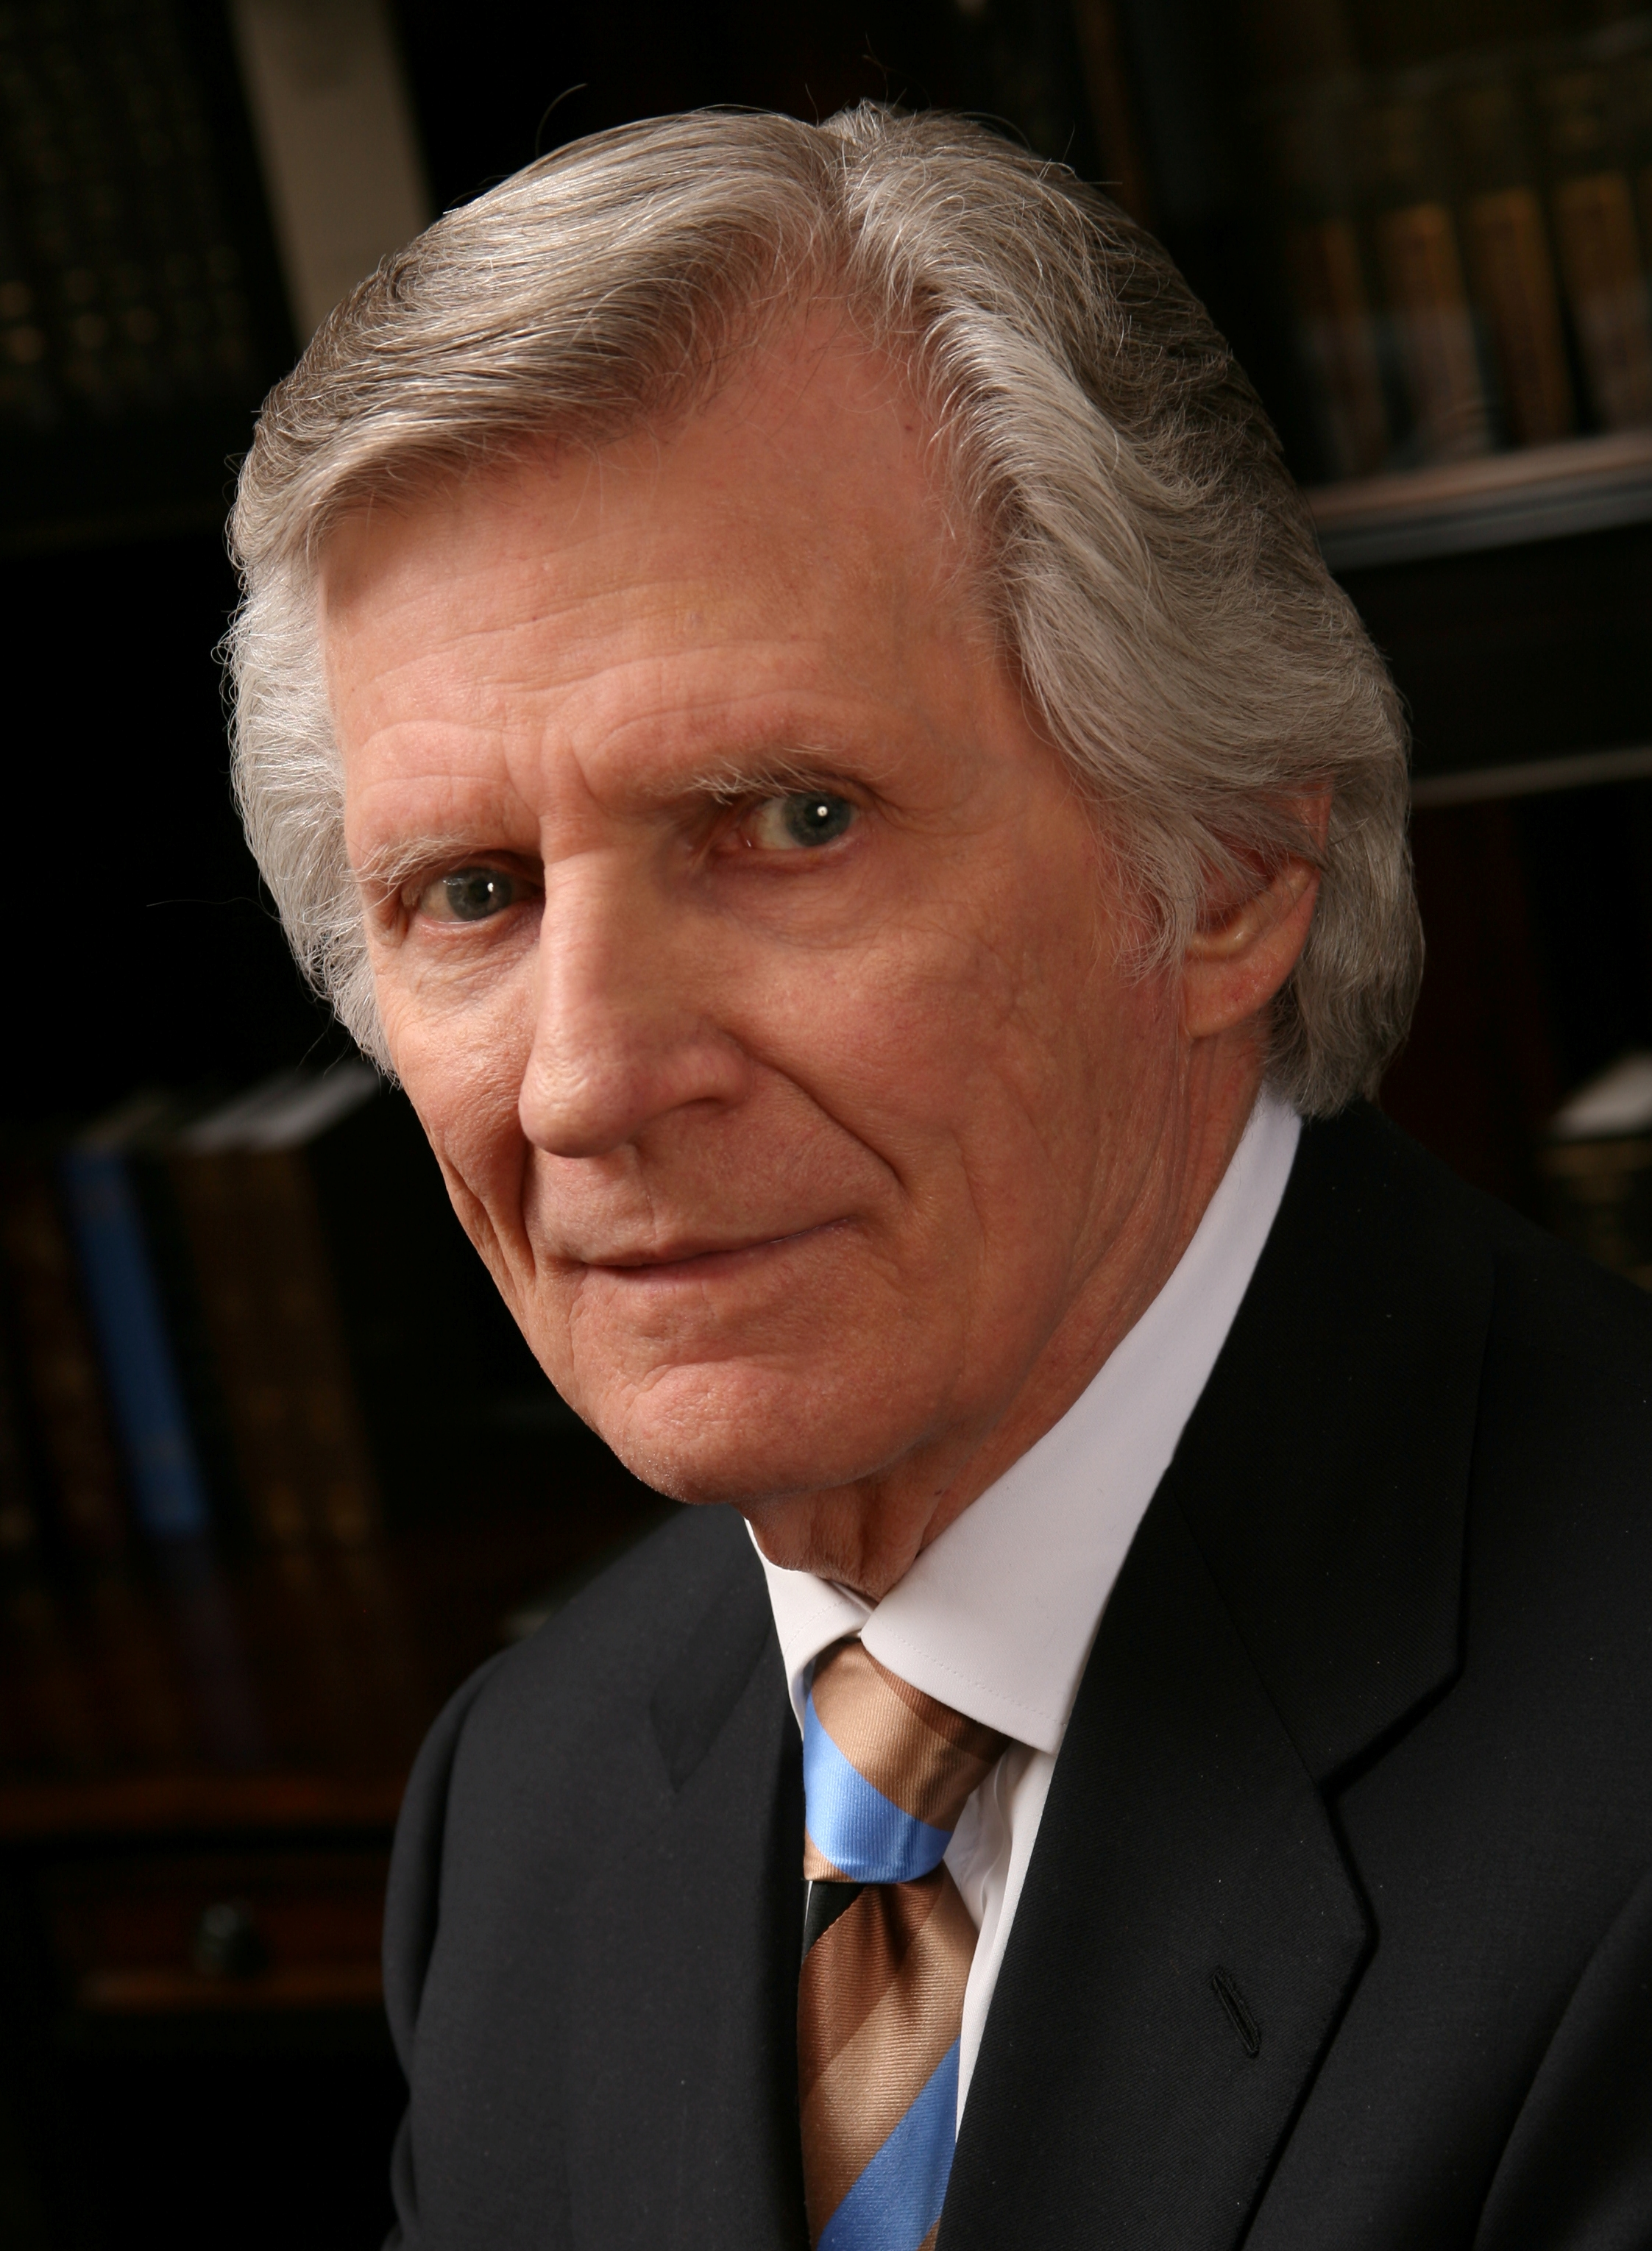 the legacy of david wilkerson 1931 2011 flower